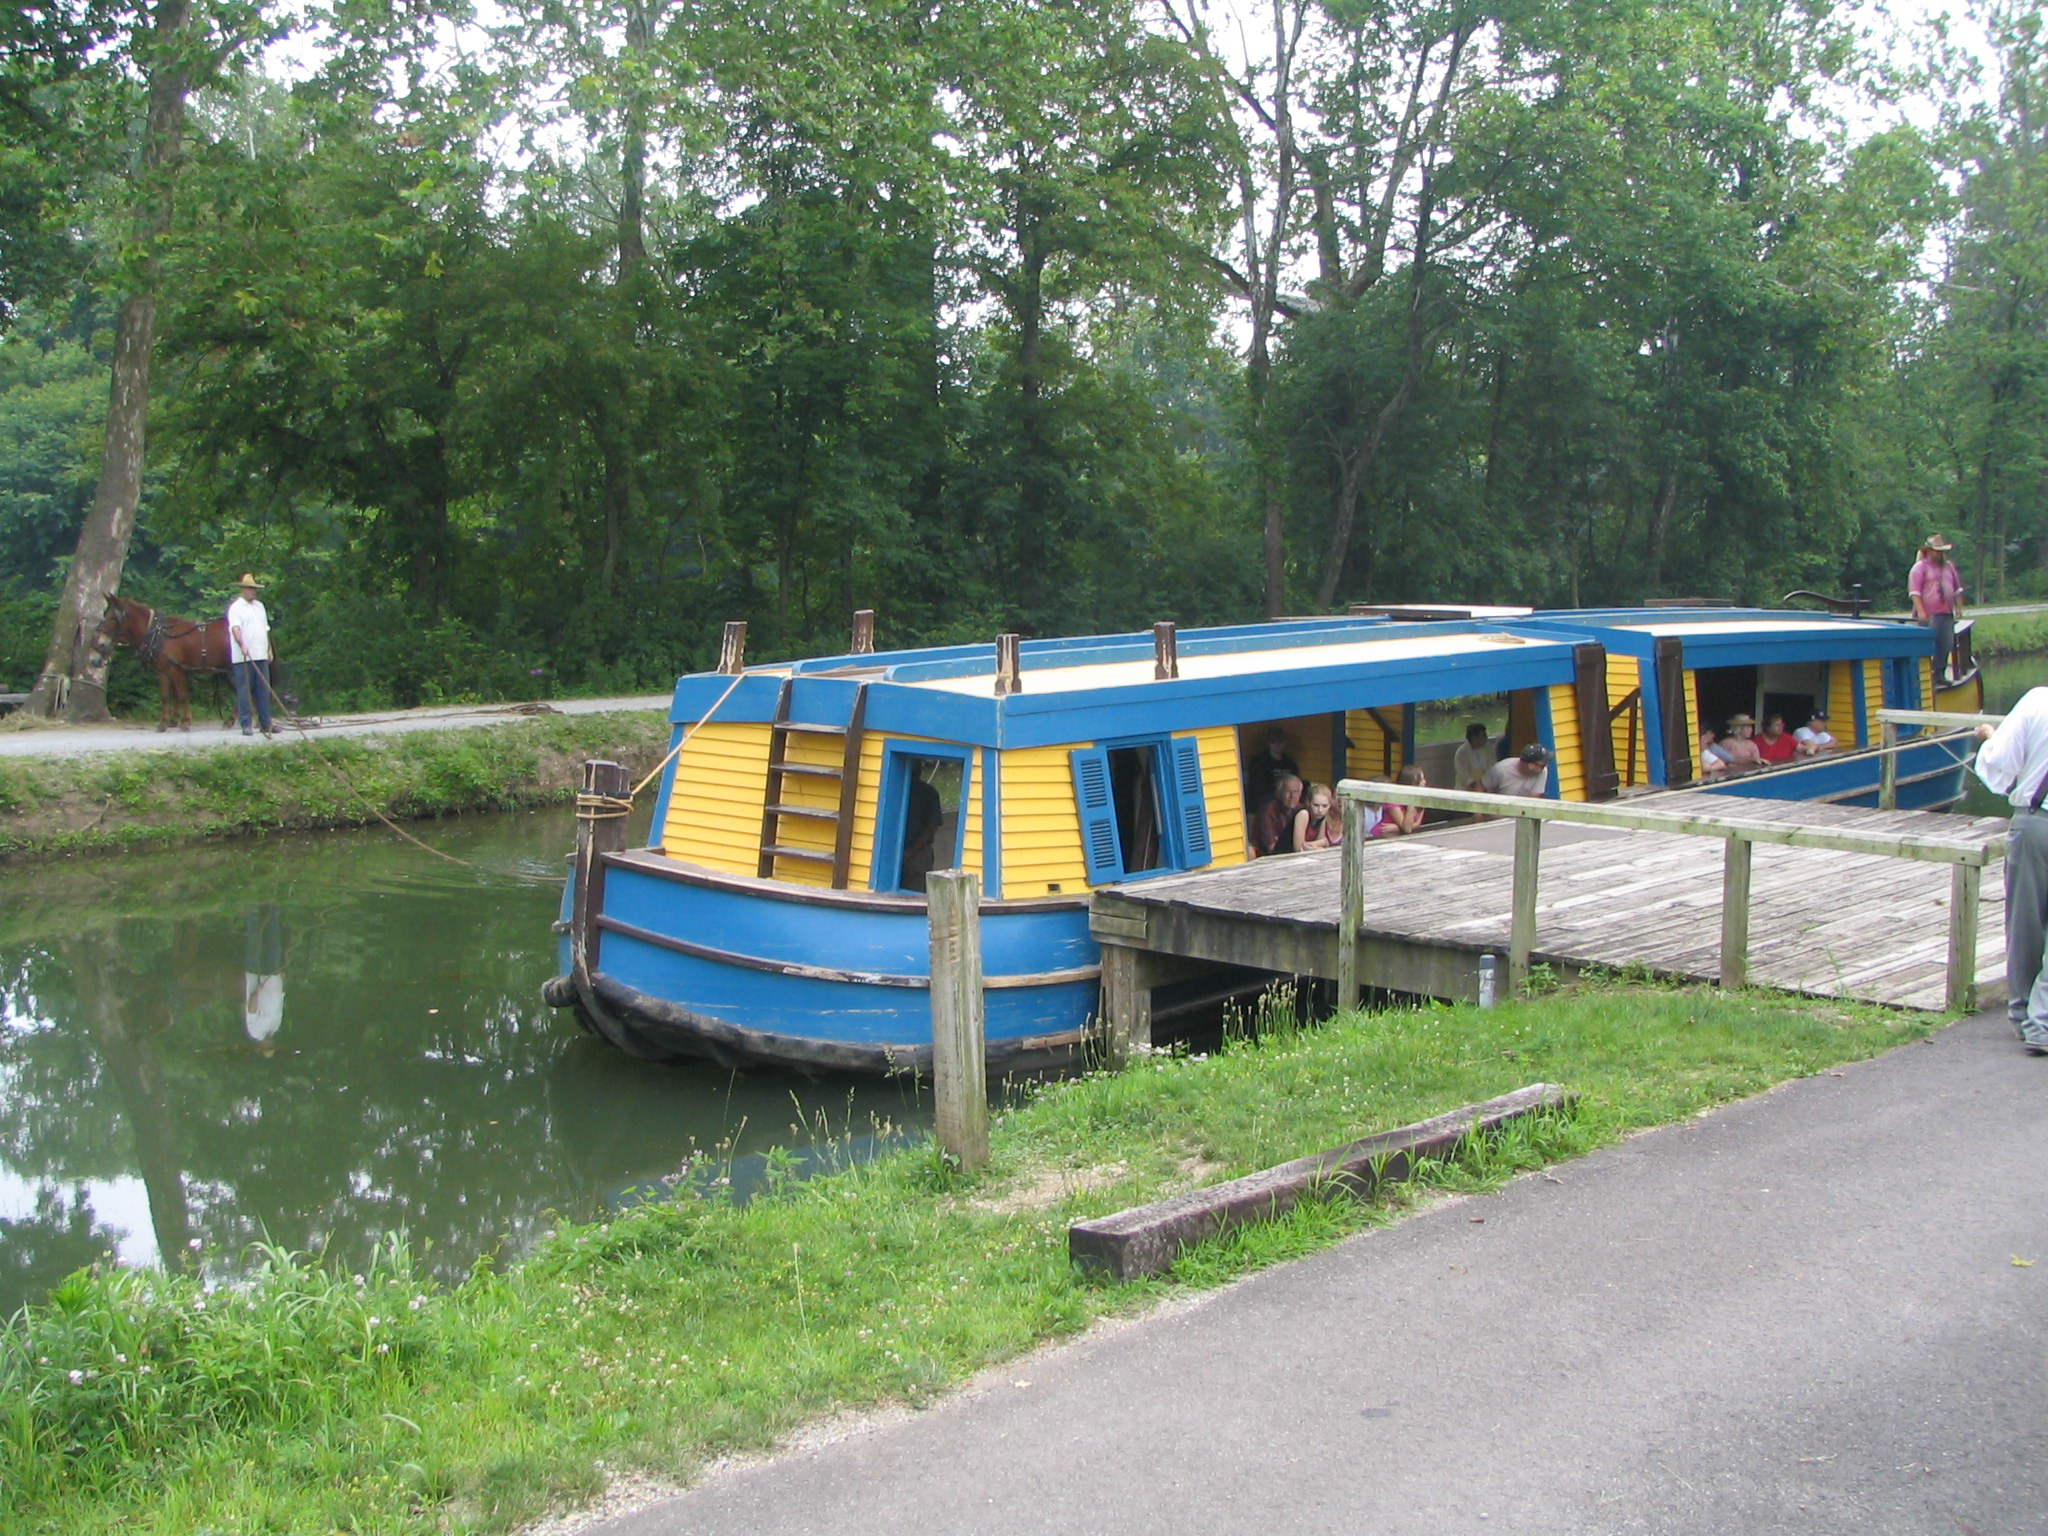 external image Canal_Boat_on_Miami_Erie_Canal_in_Piqua.jpg